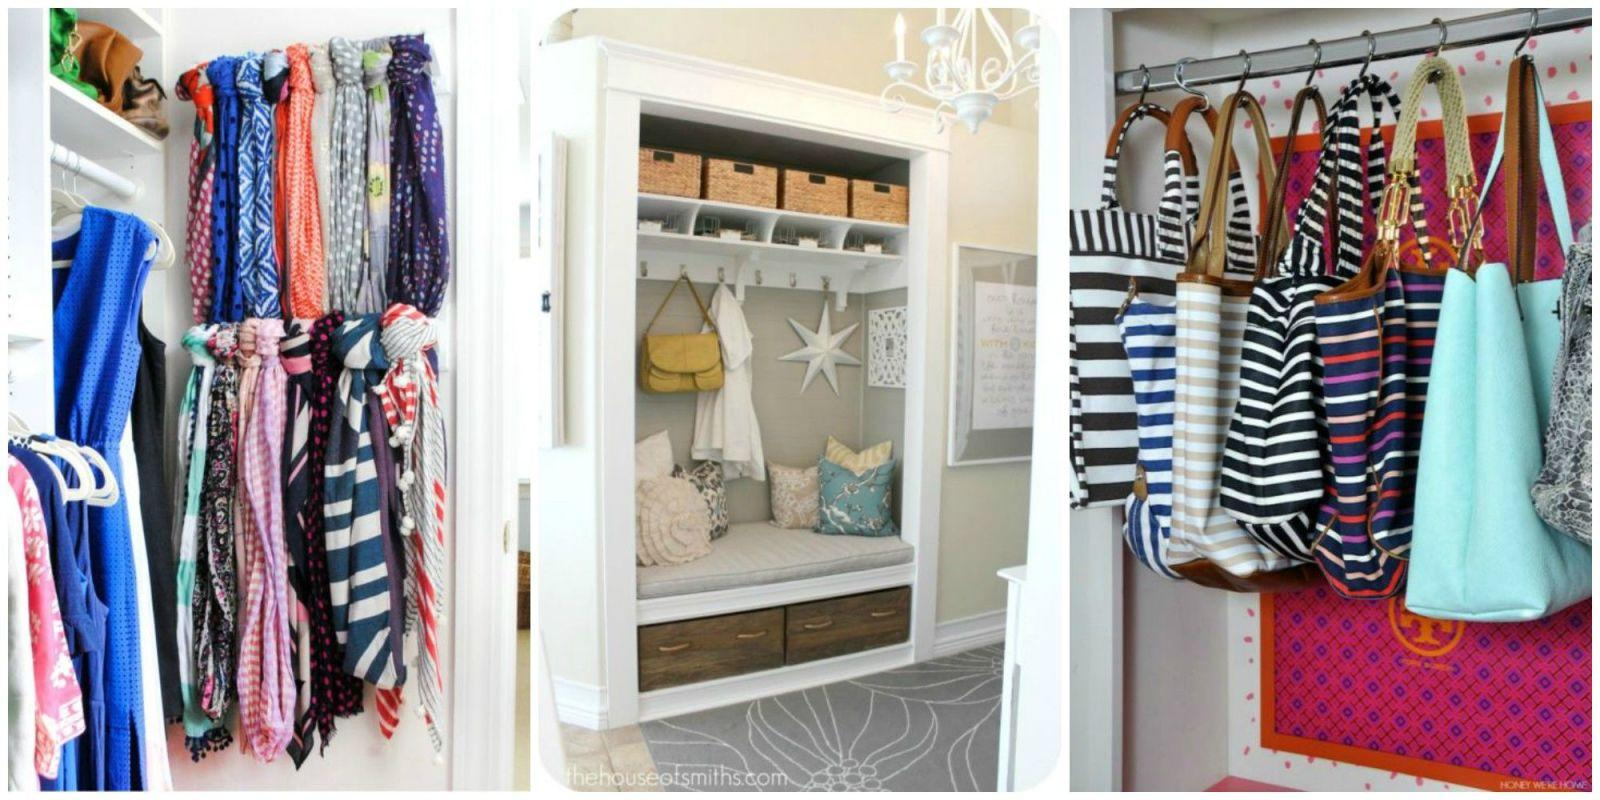 14 Best Ways To Organize Your Closet